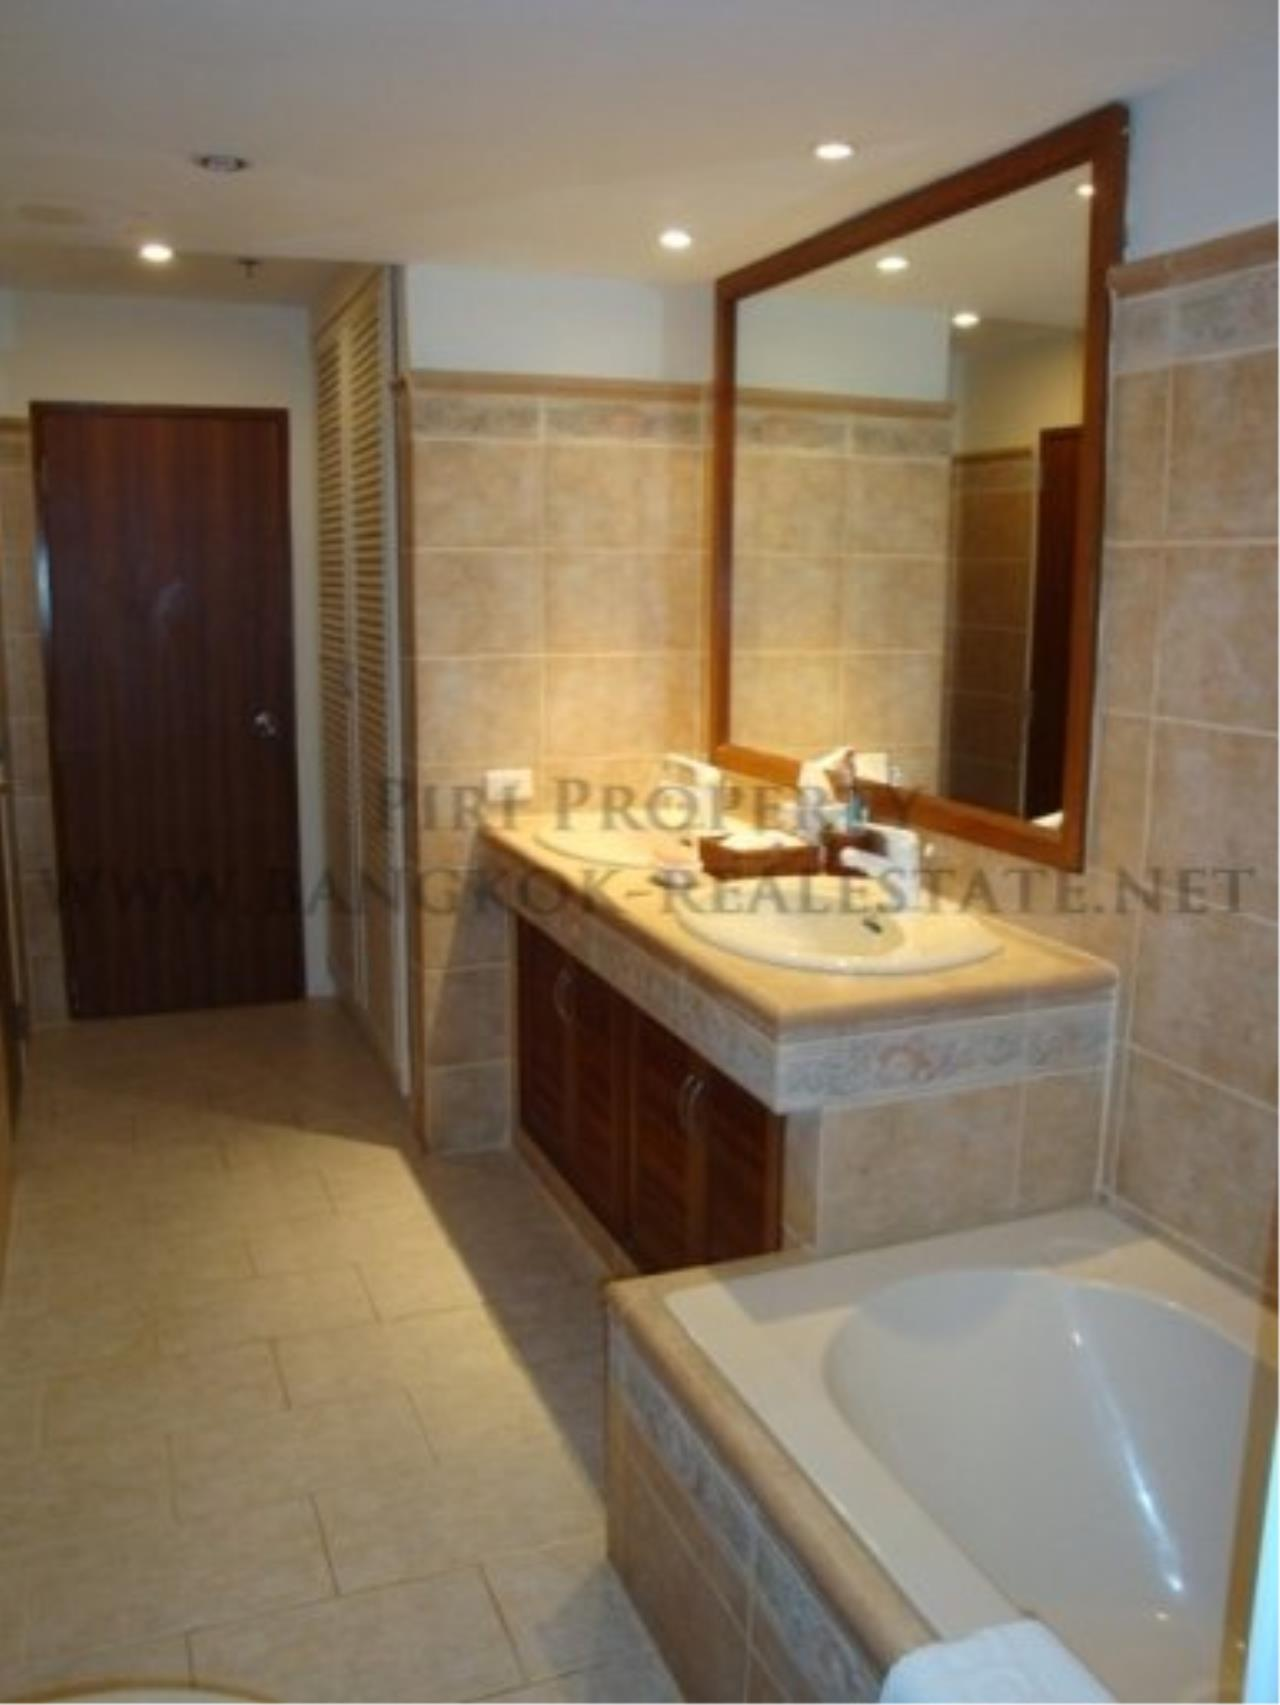 Piri Property Agency's 2 Bedroom Condo with great Outdoor Terrace of 40 SQM - Just a 5 minute walk to the BTS 9